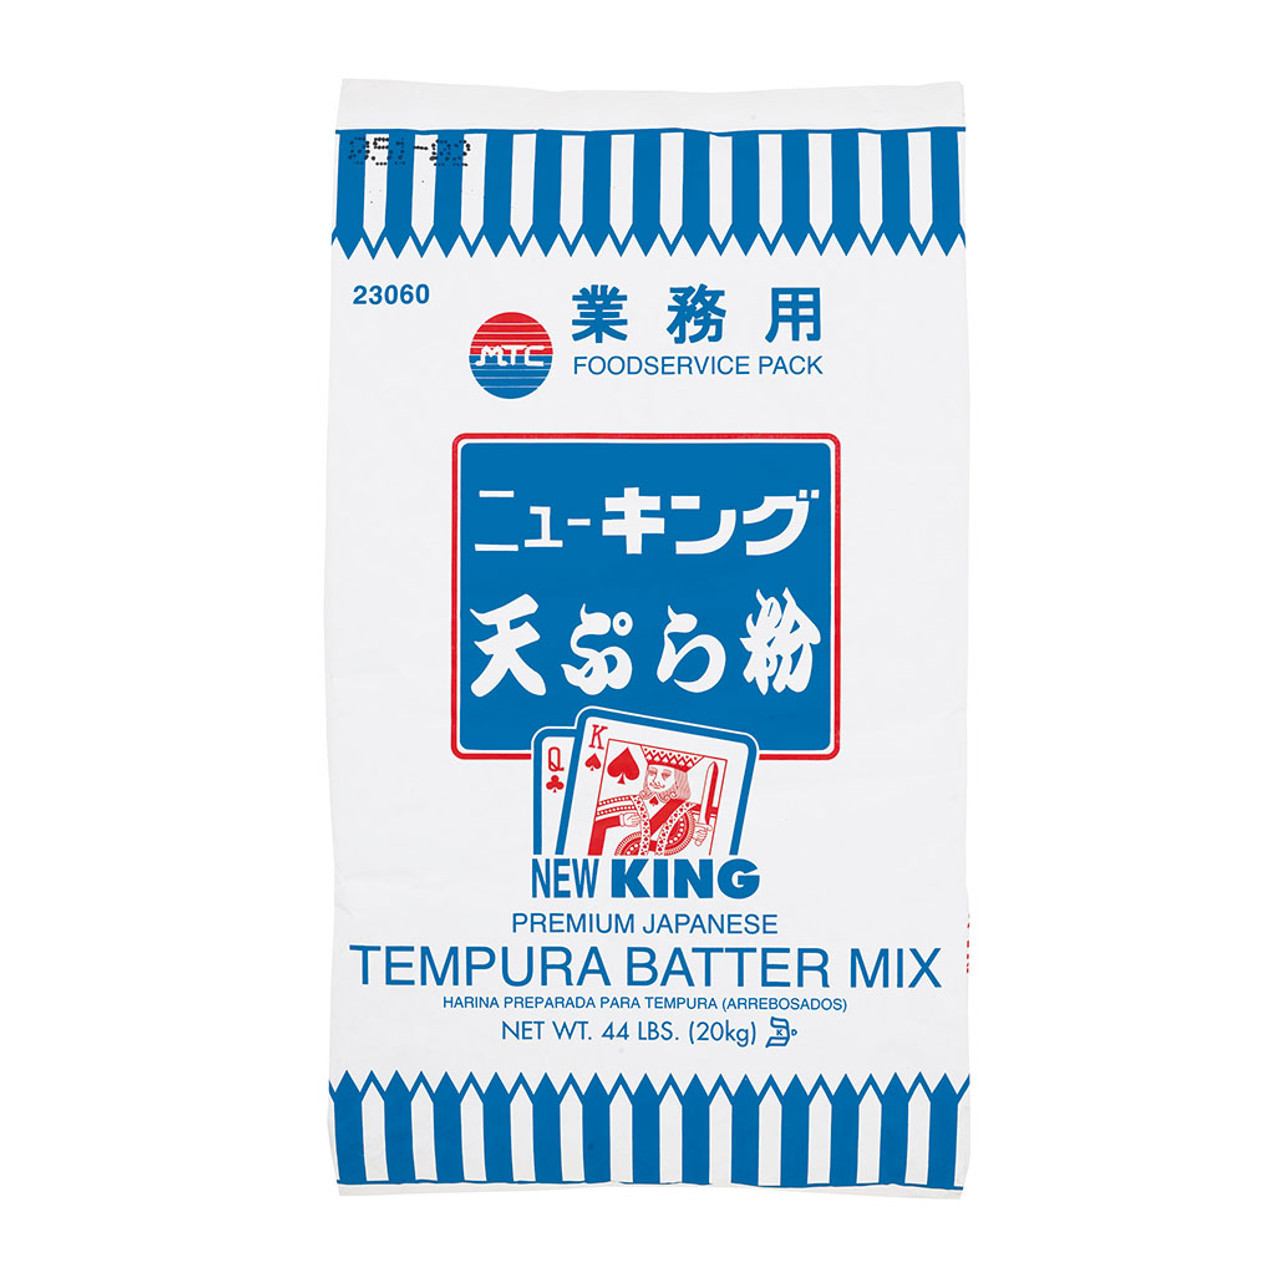 Nippn New King Tempura Batter Mix Tempura Ko 44 Lbs 20kg Mtc Kitchen